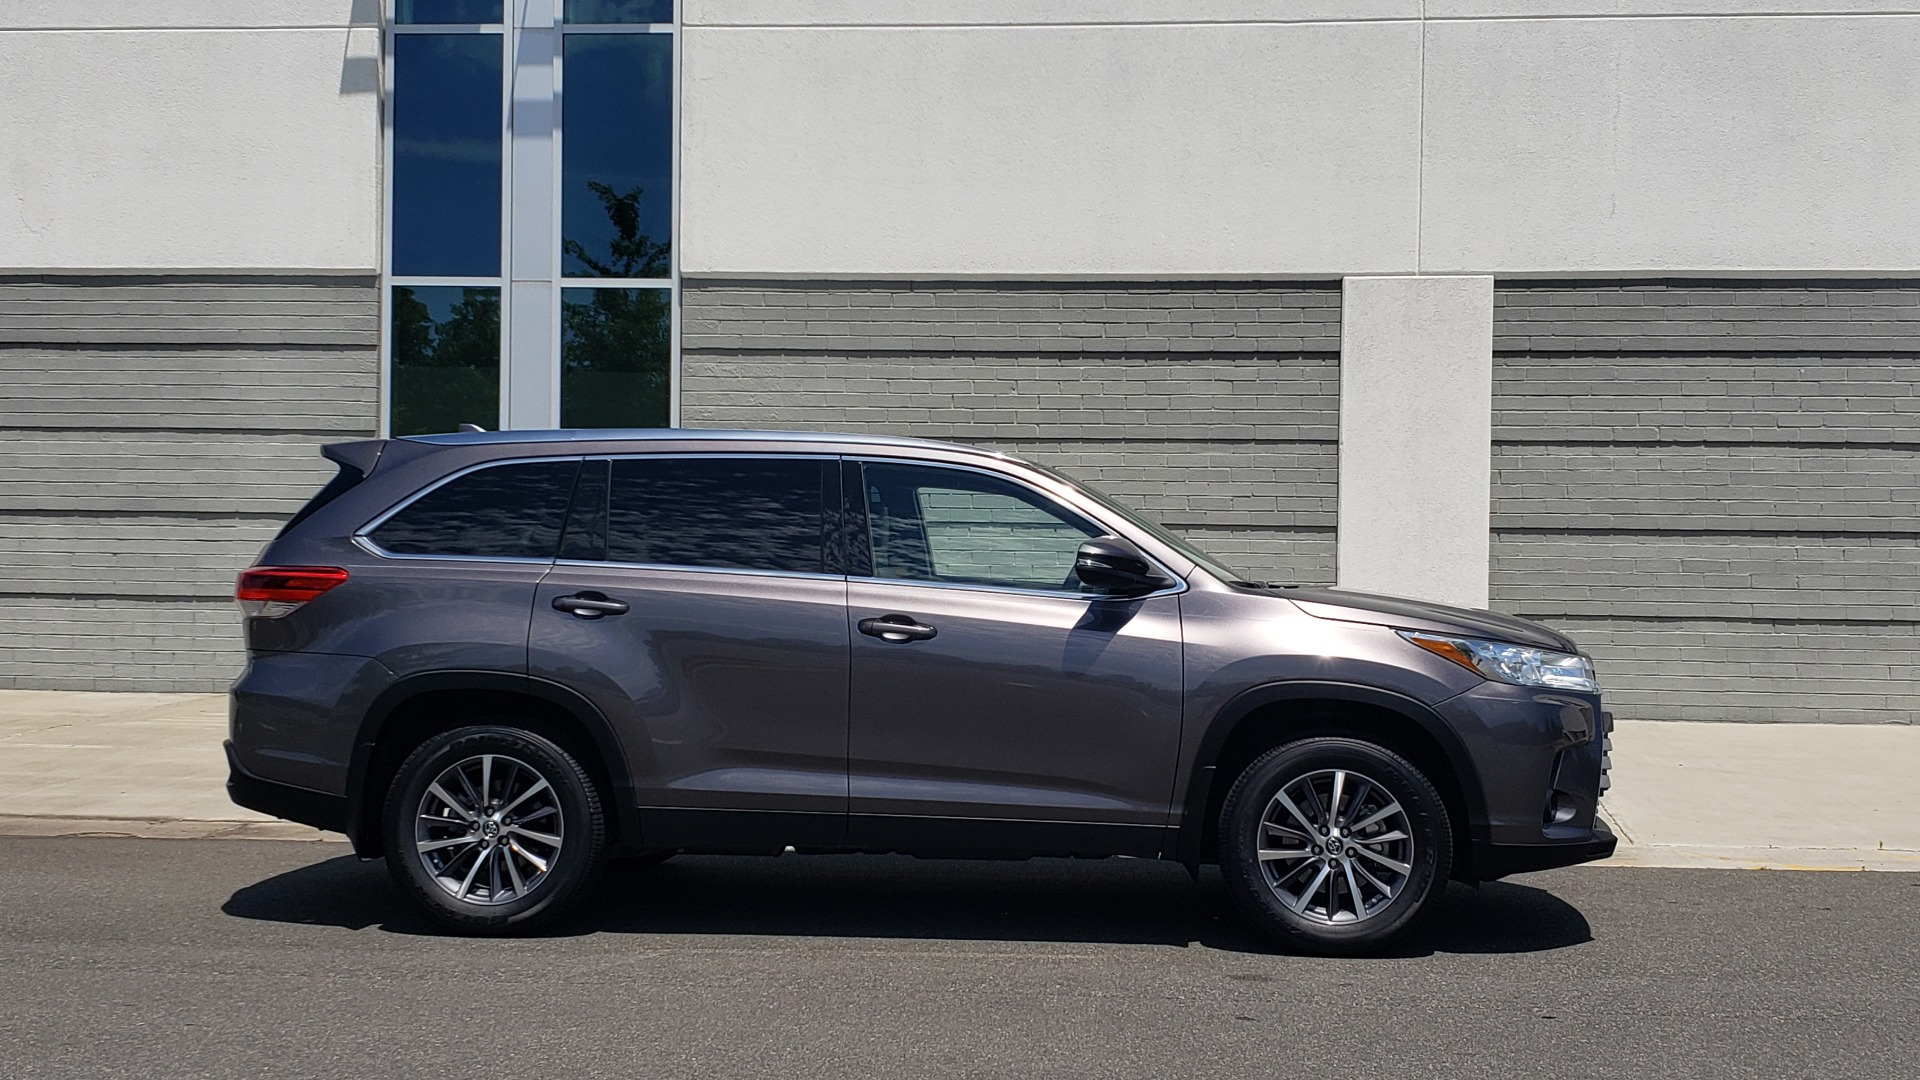 Used 2019 Toyota HIGHLANDER XLE / 3.5L V6 / AWD / LEATHER / 8-SPD AUTO / 1-OWNER for sale $37,500 at Formula Imports in Charlotte NC 28227 8